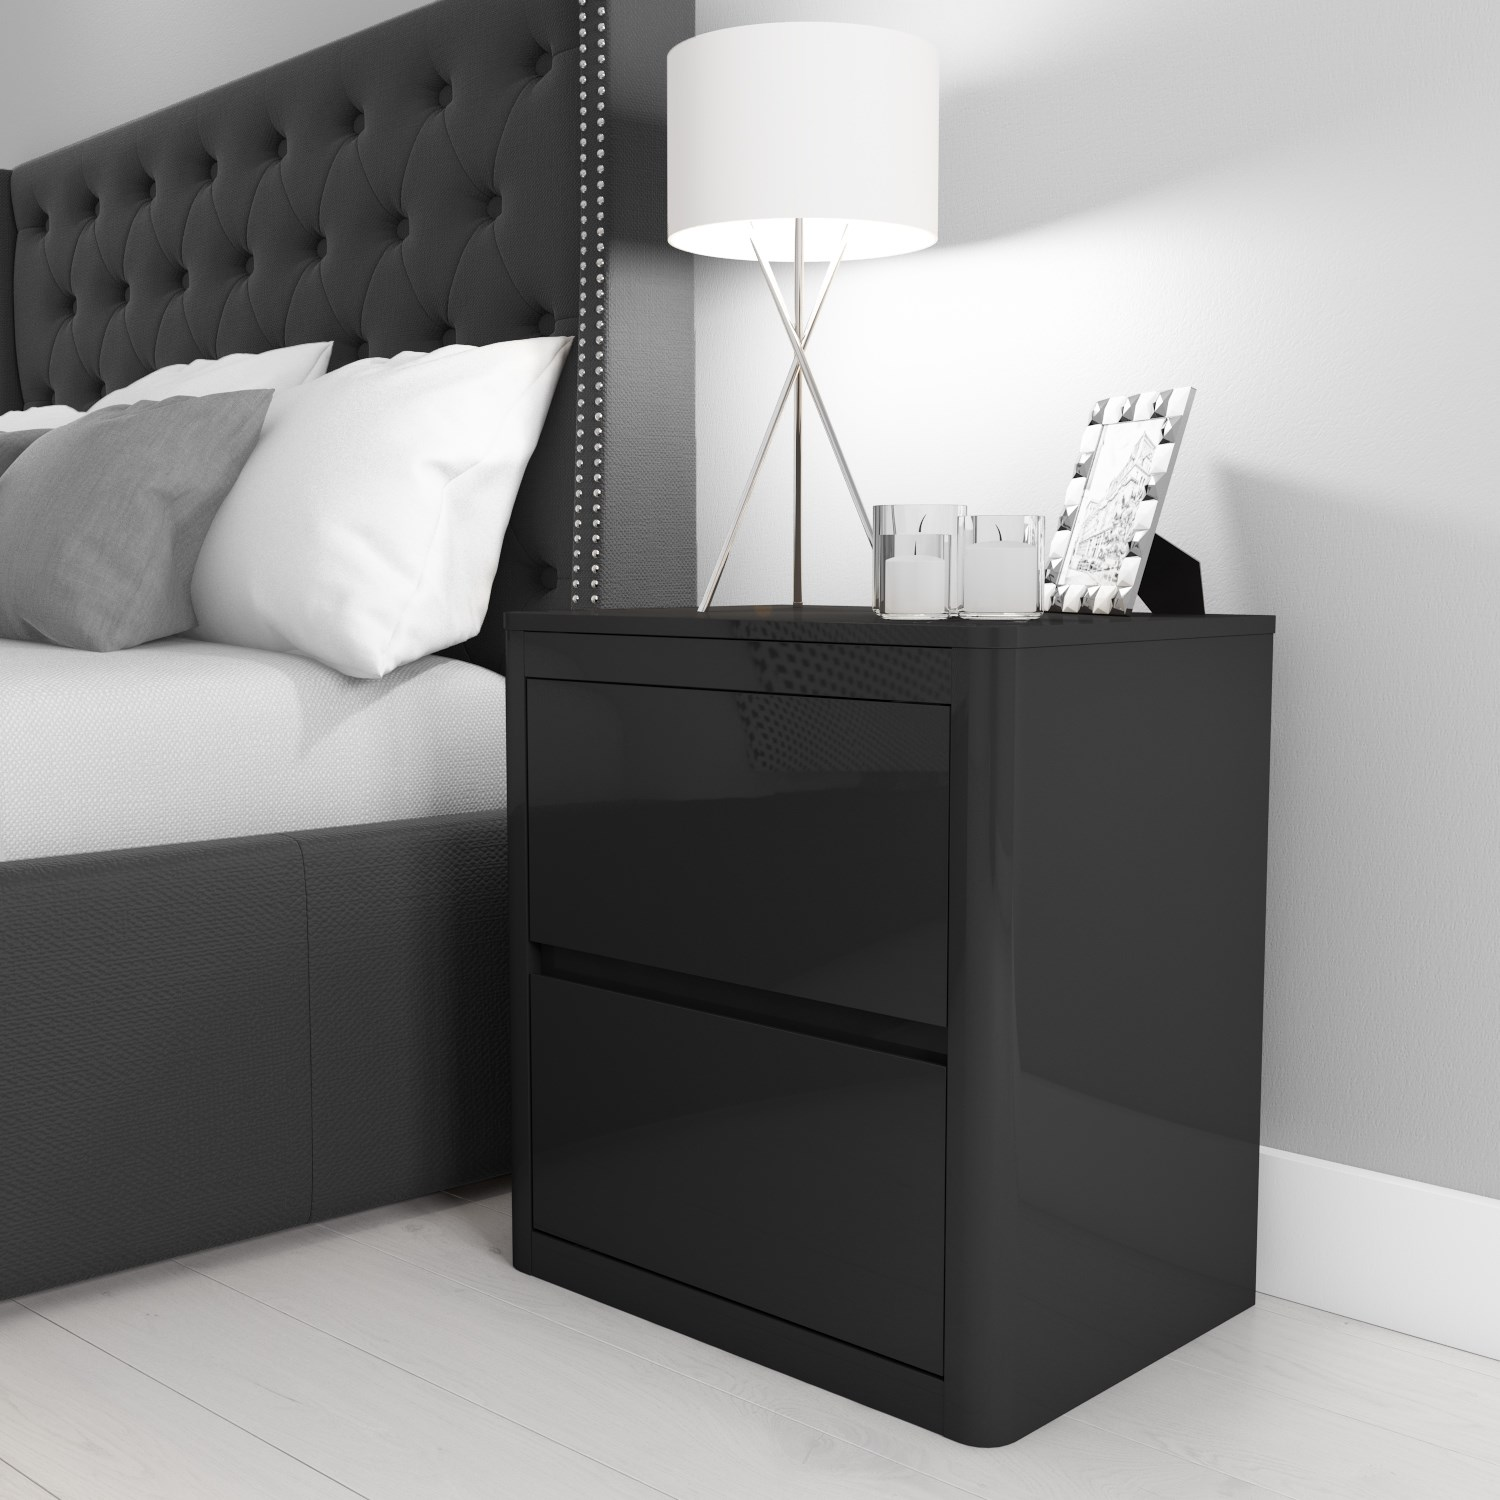 Lexi High Gloss Anthracite Grey 9 Drawer Bedside Table